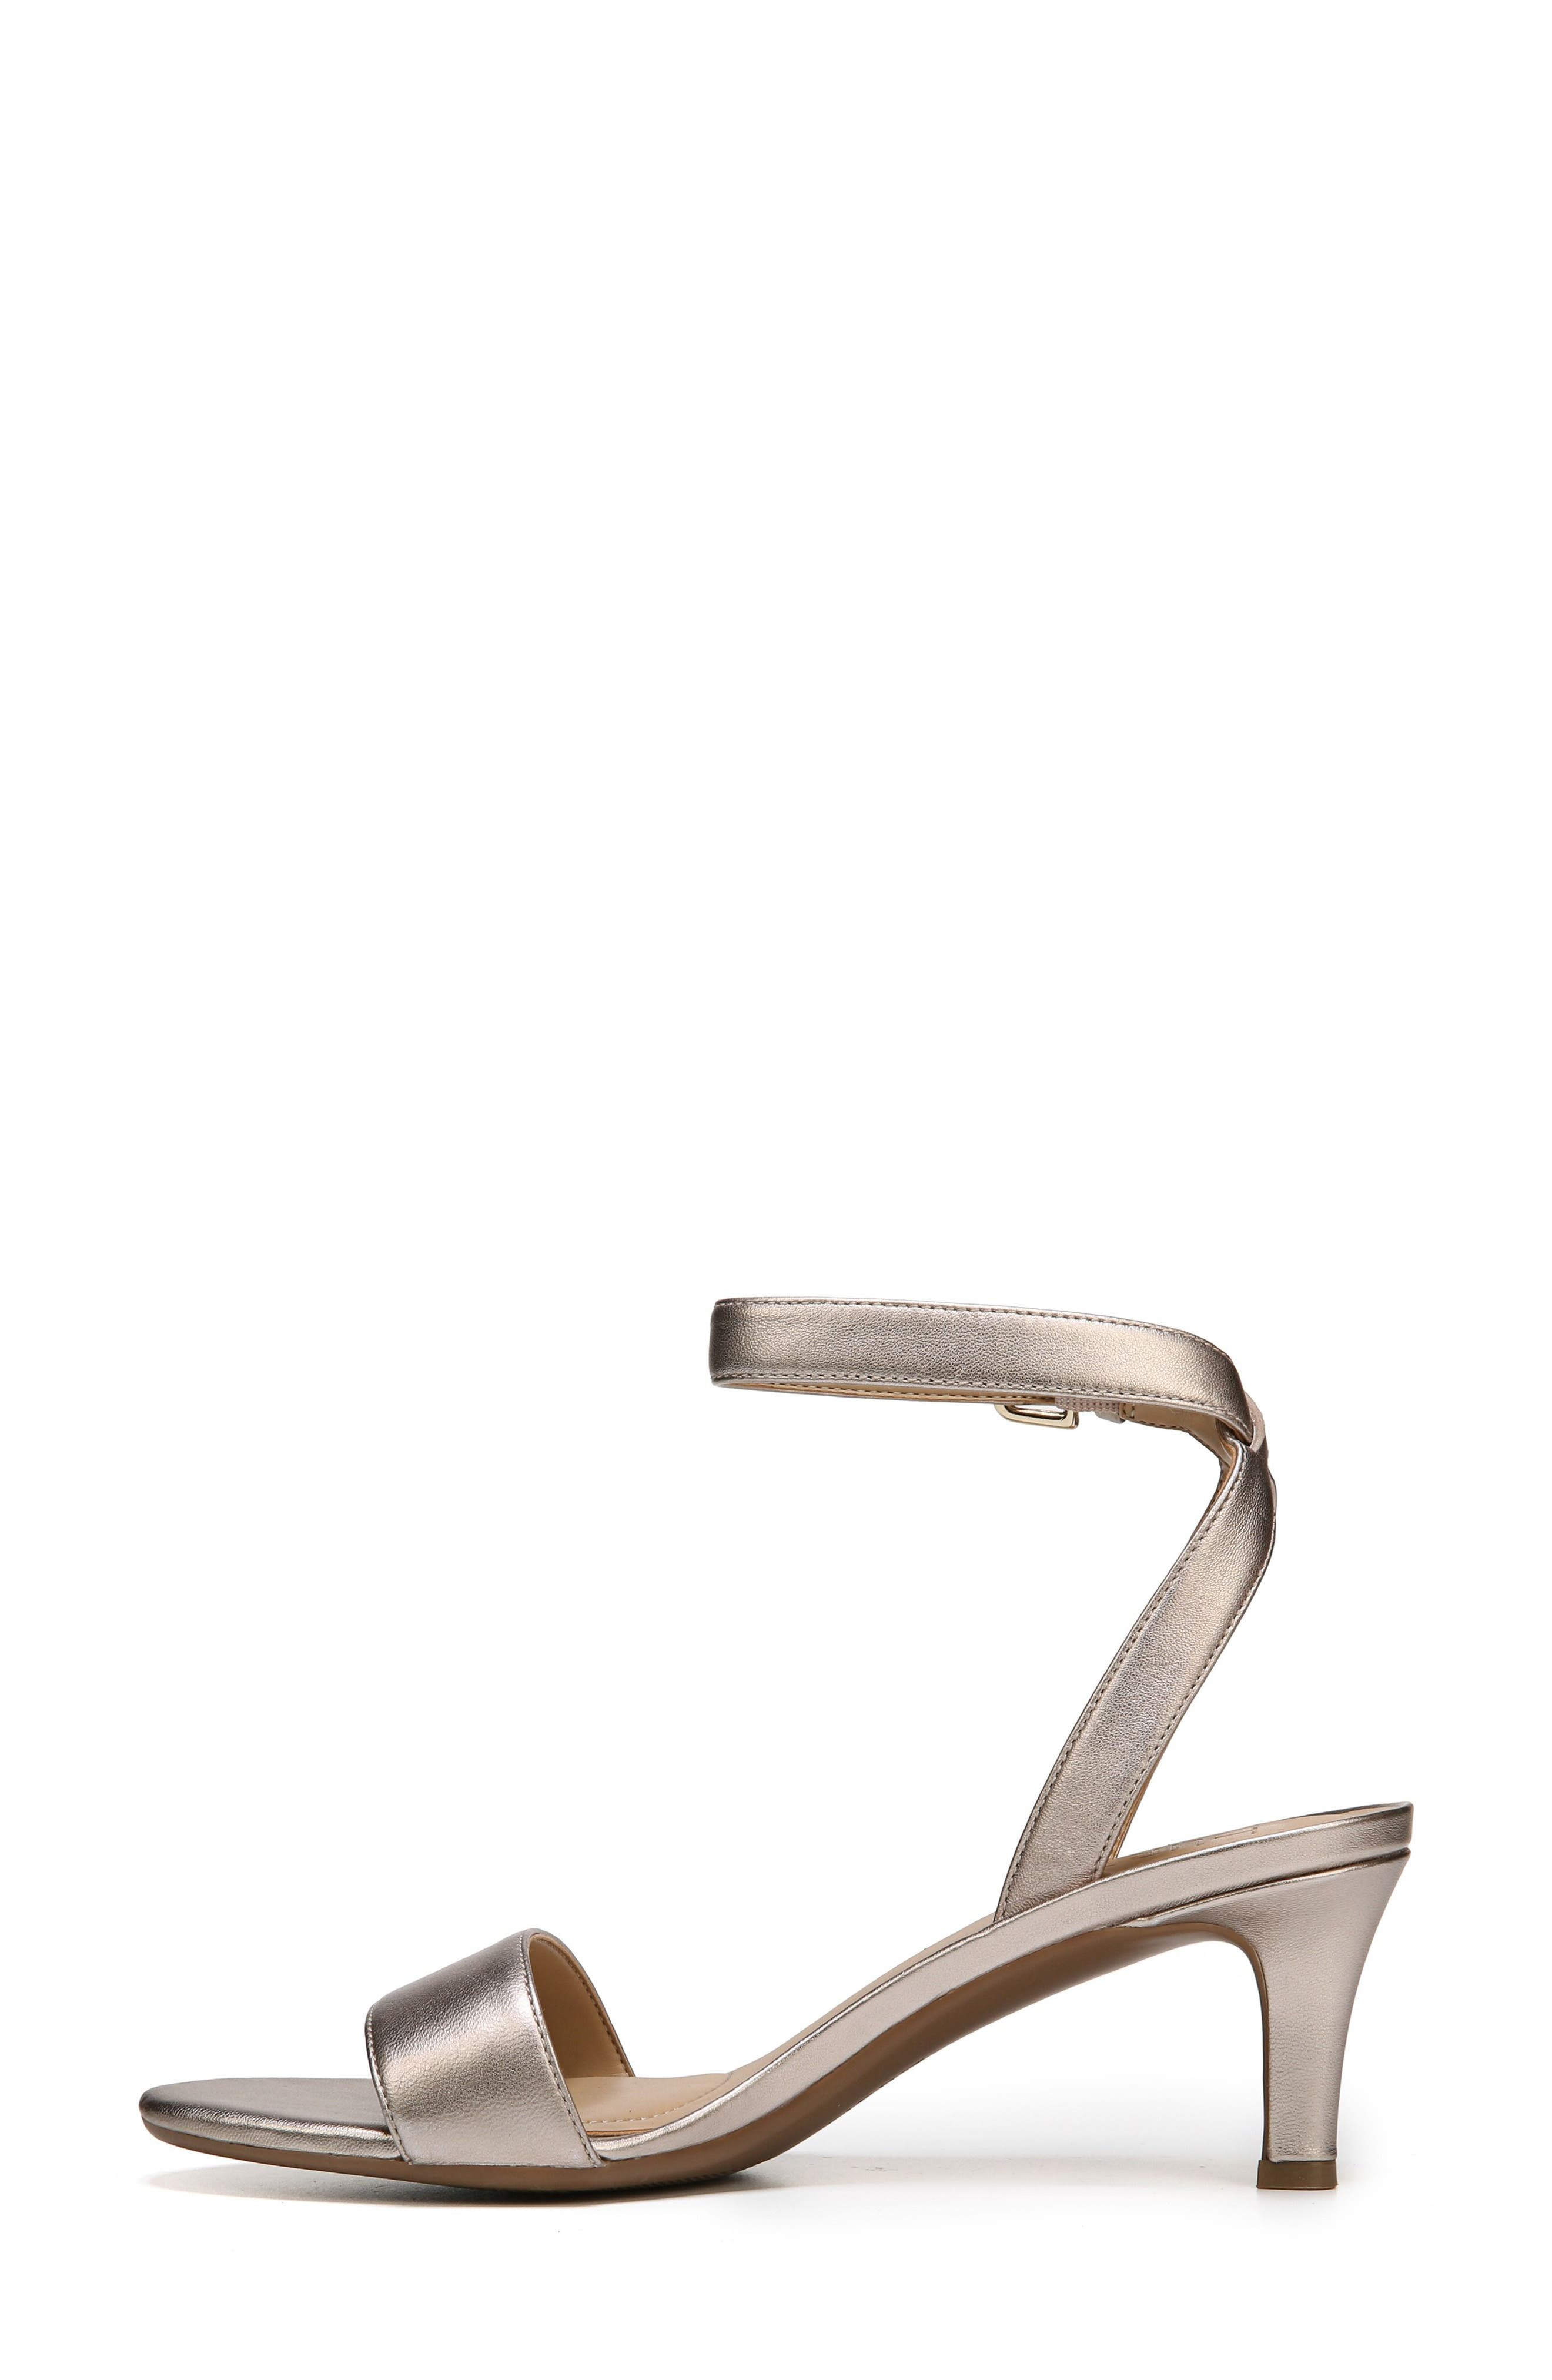 Tinda Sandal,                             Alternate thumbnail 21, color,